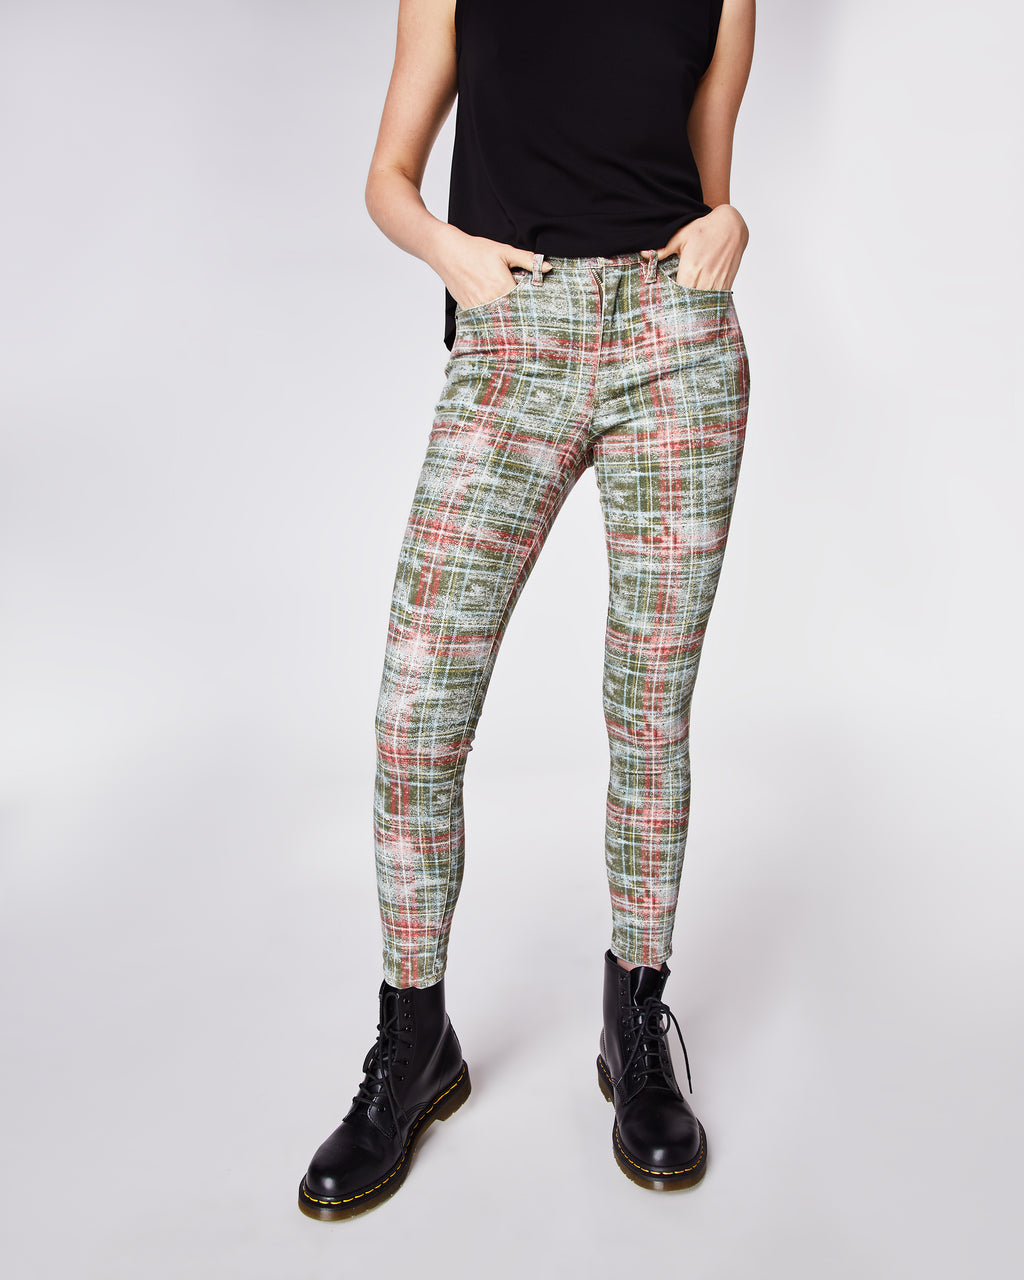 adade72f9cc9a AS10176 - WEATHERED PLAID JEANS - bottoms - denim - In a green and red  plaid ...